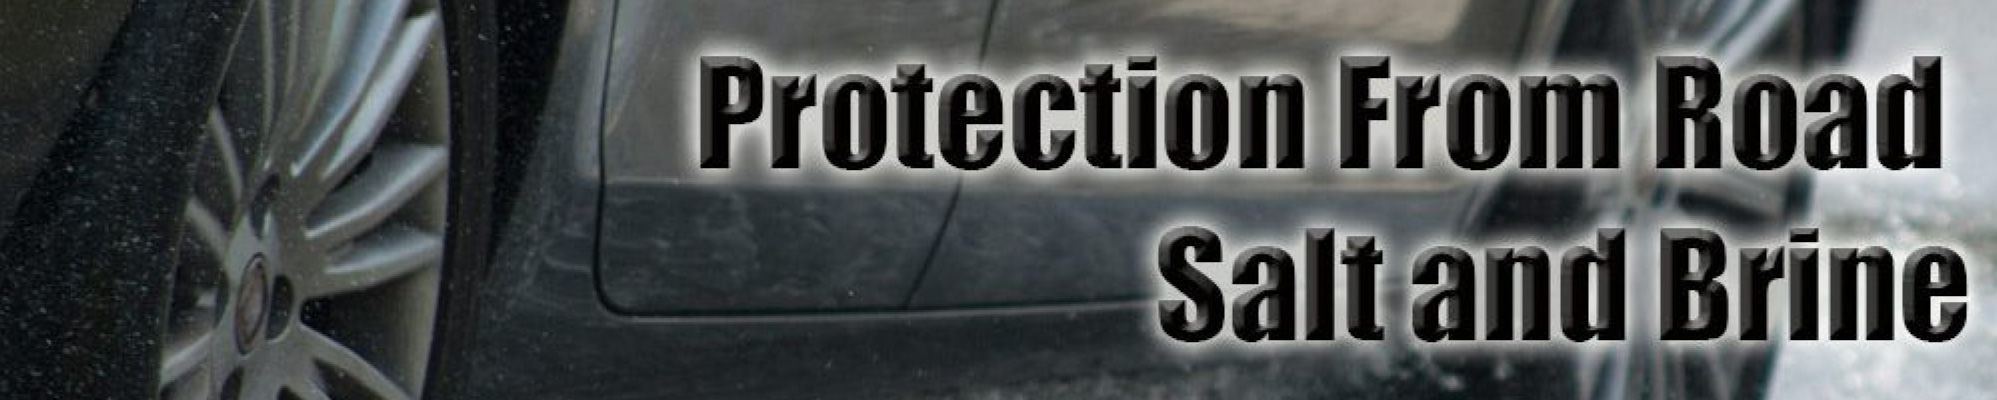 Protection From Road Salt and Brine